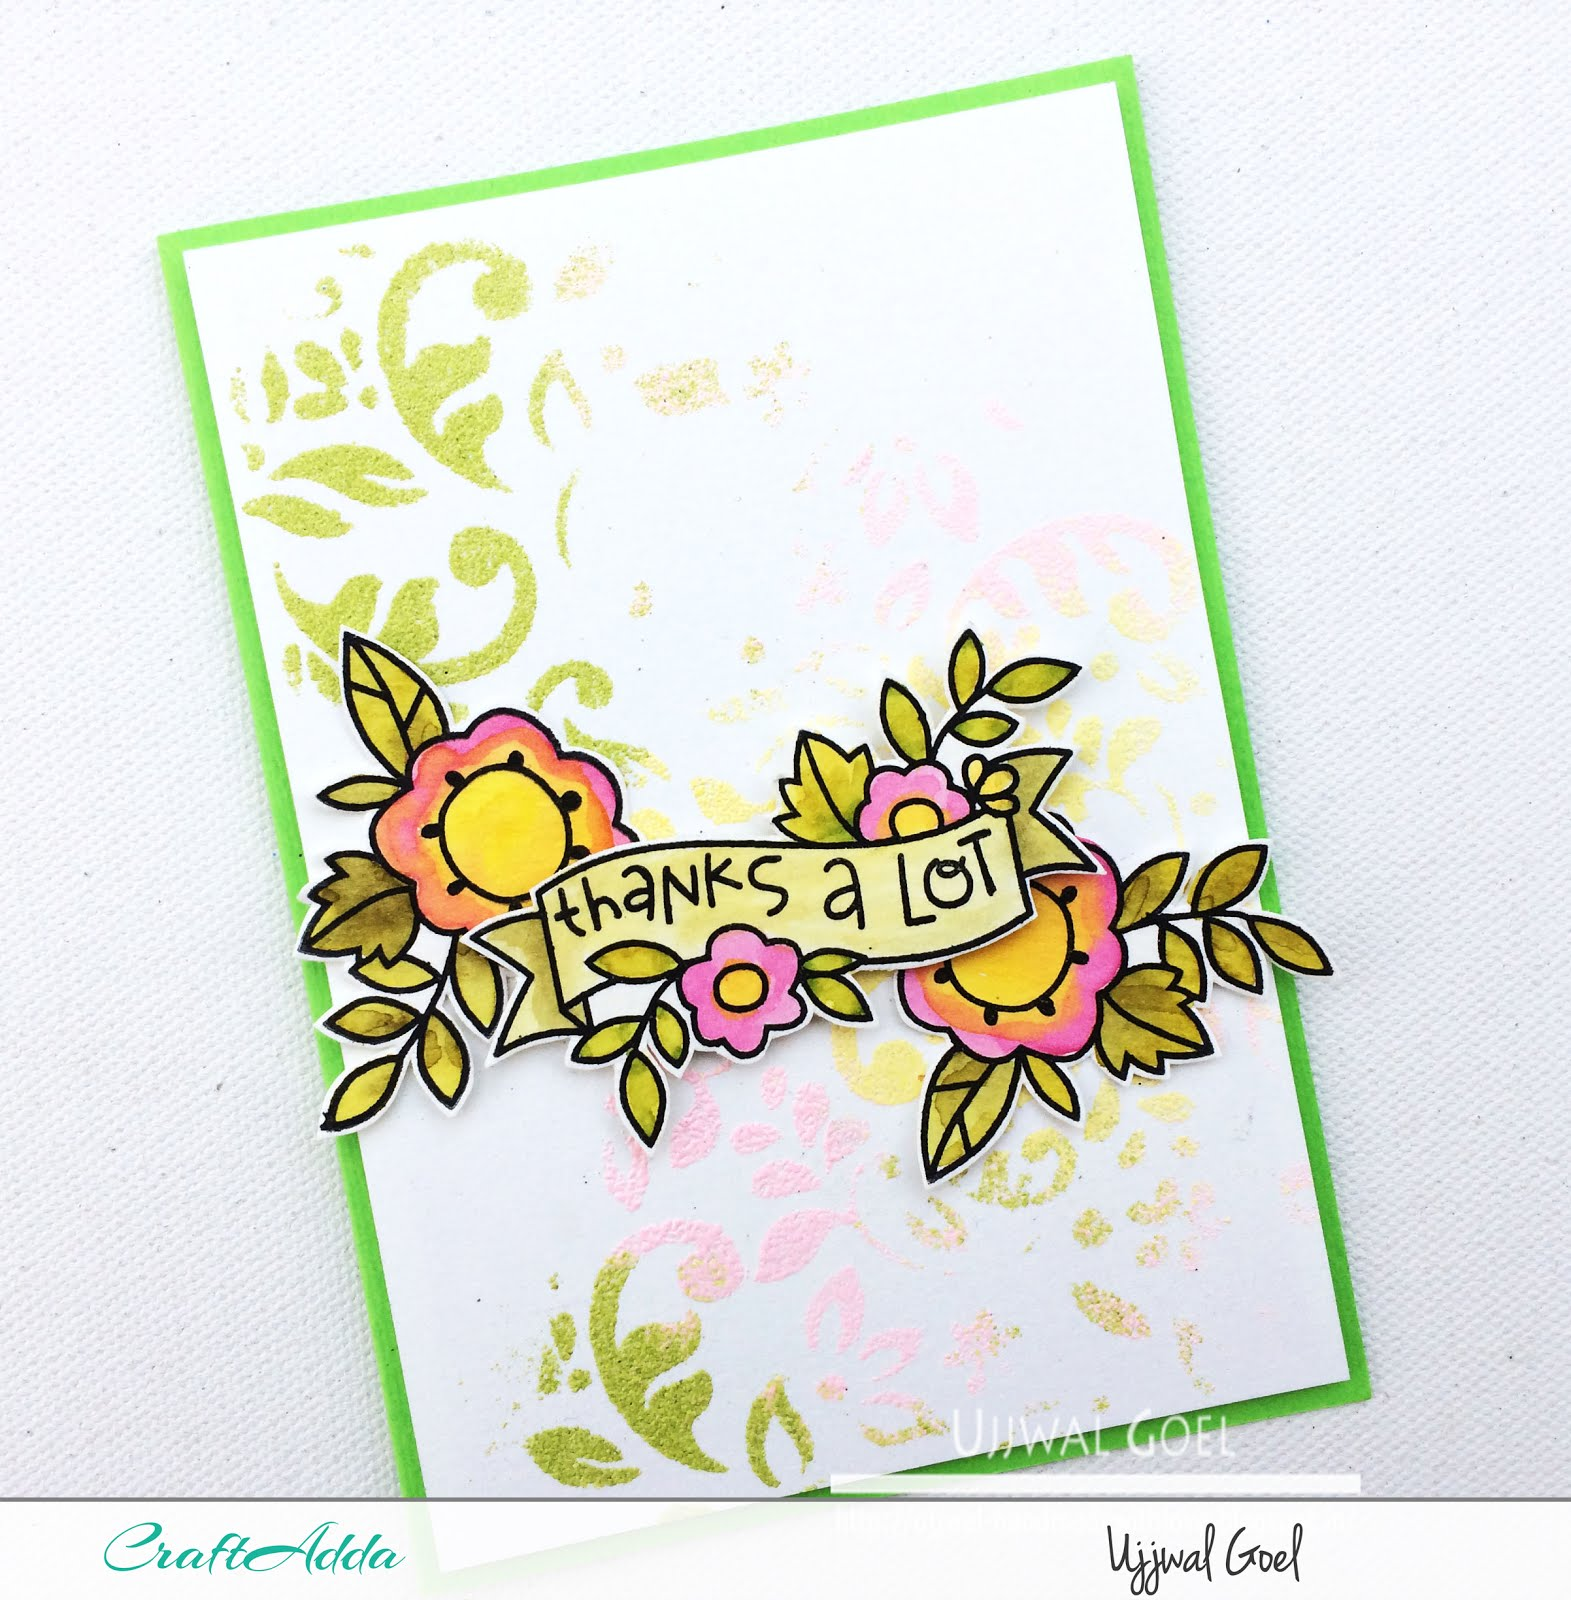 6 ways to use Stencils [Guest Post by Ujjwal] 6